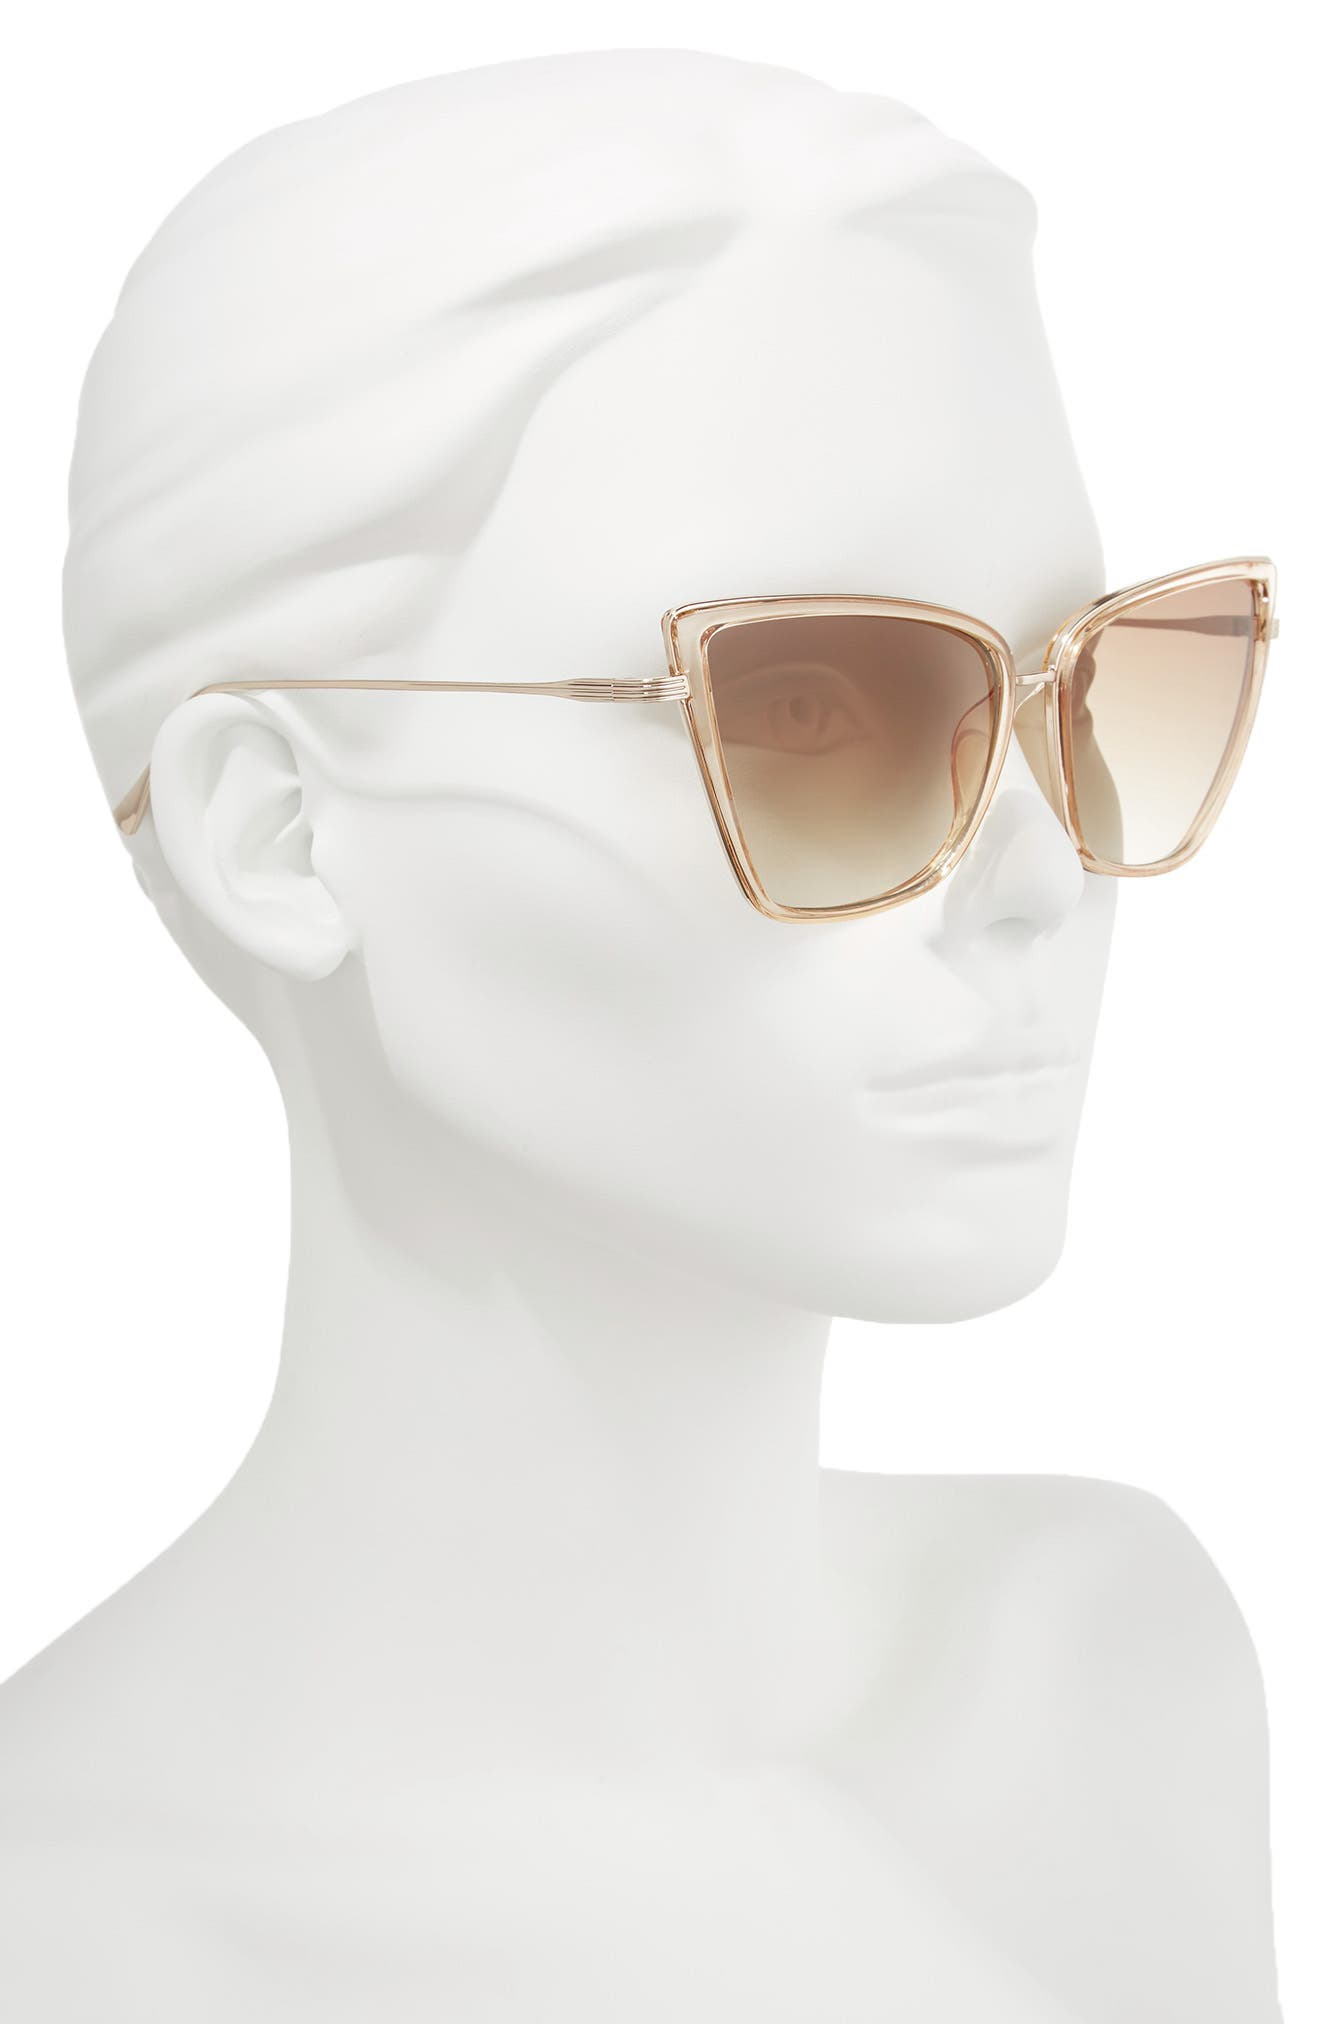 55mm Cat Eye Sunglasses,                             Alternate thumbnail 2, color,                             Nude